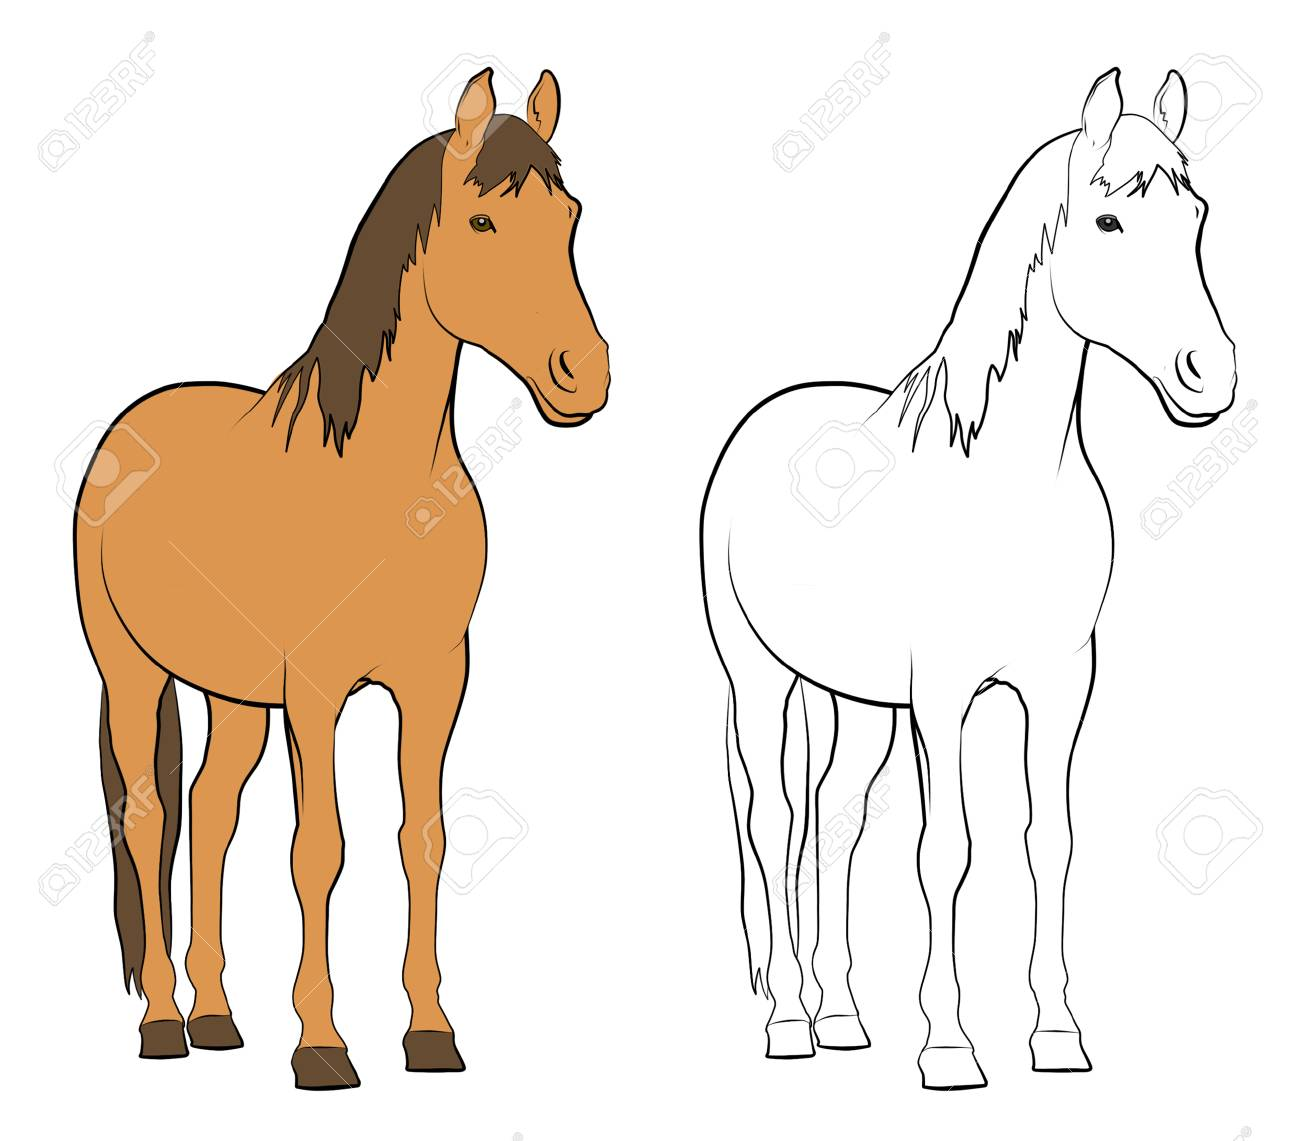 Line drawings of horse - Colored and Black and White - 71797013